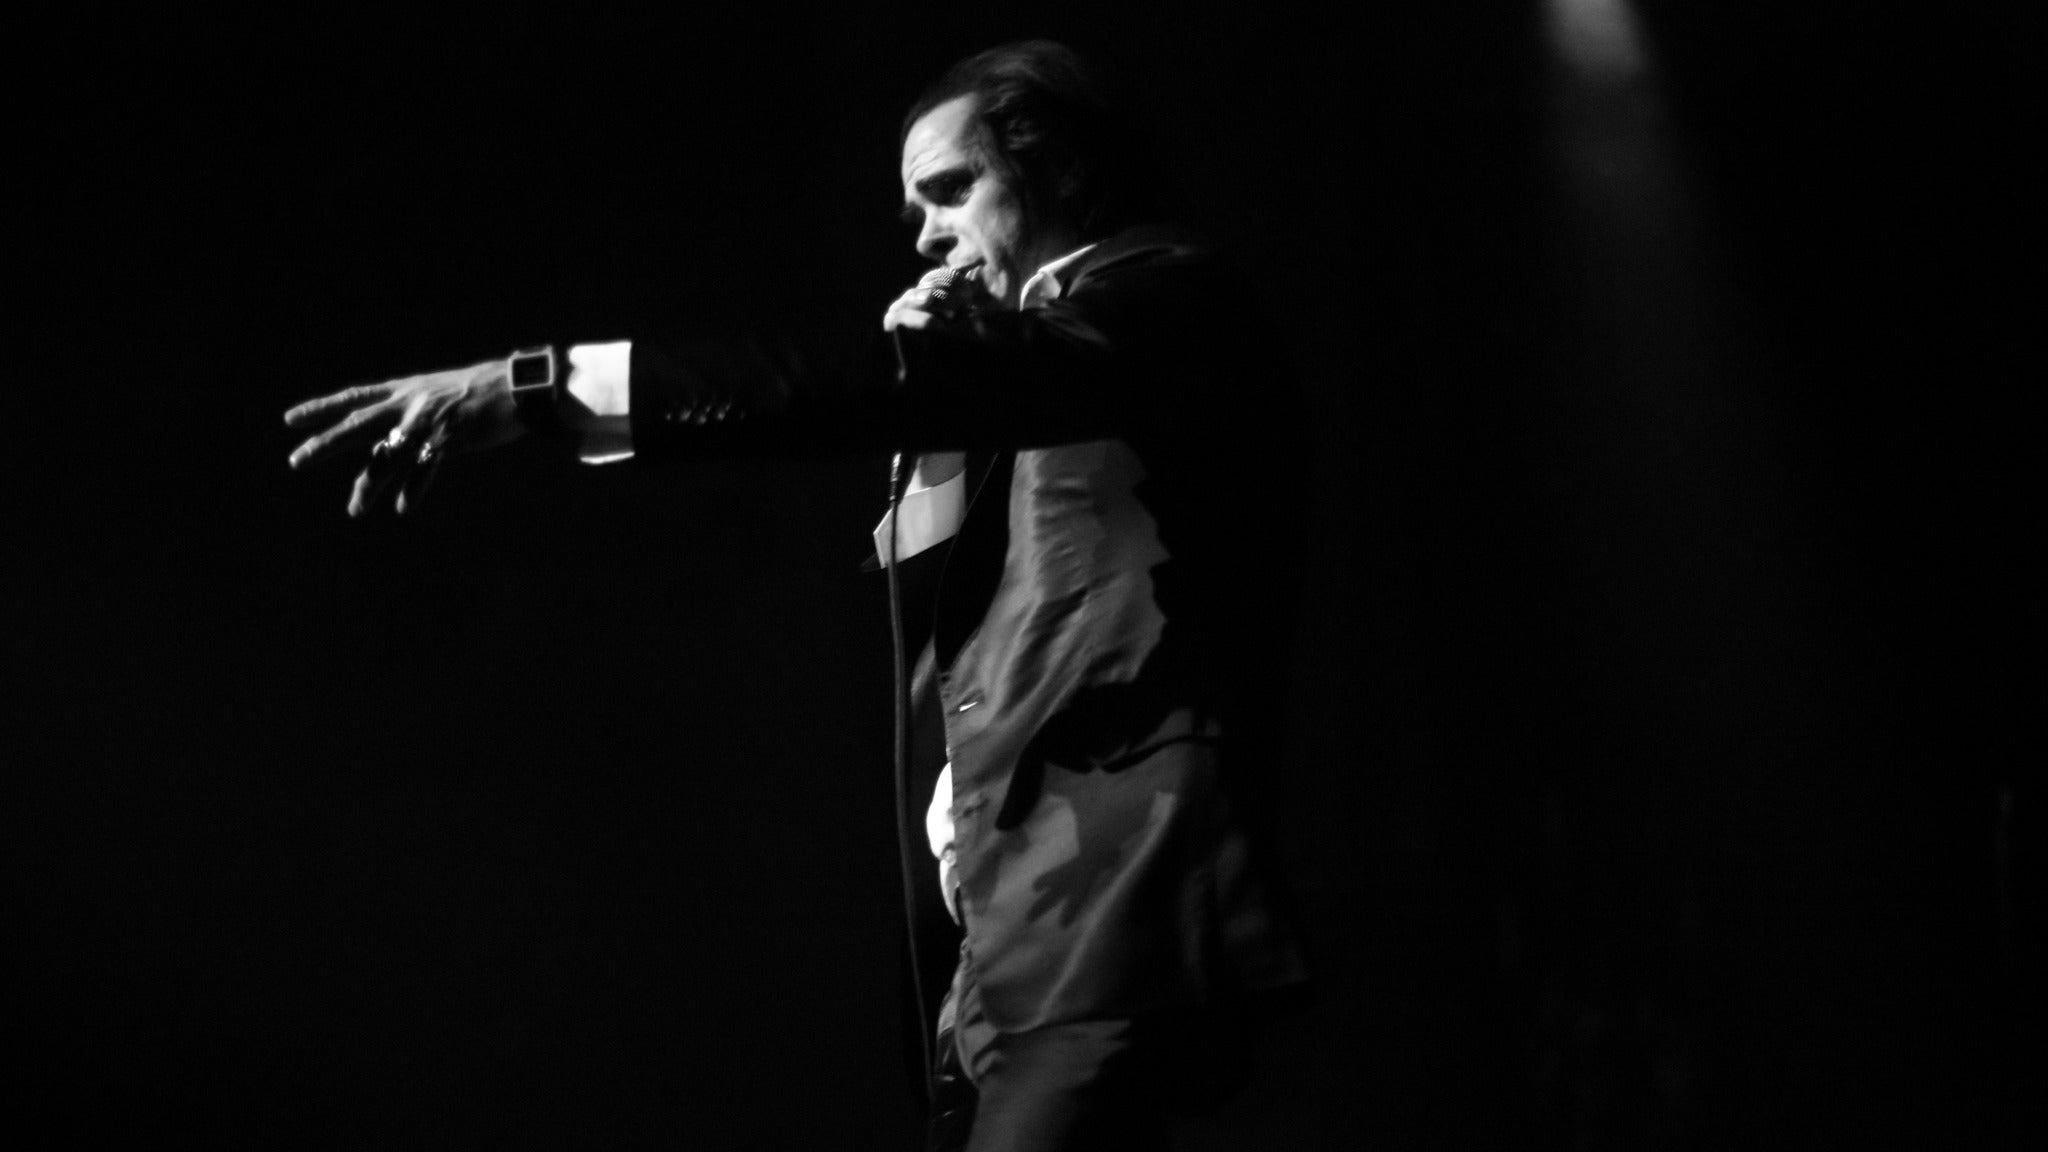 Nick Cave & the Bad Seeds at Greek Theatre-Los Angeles